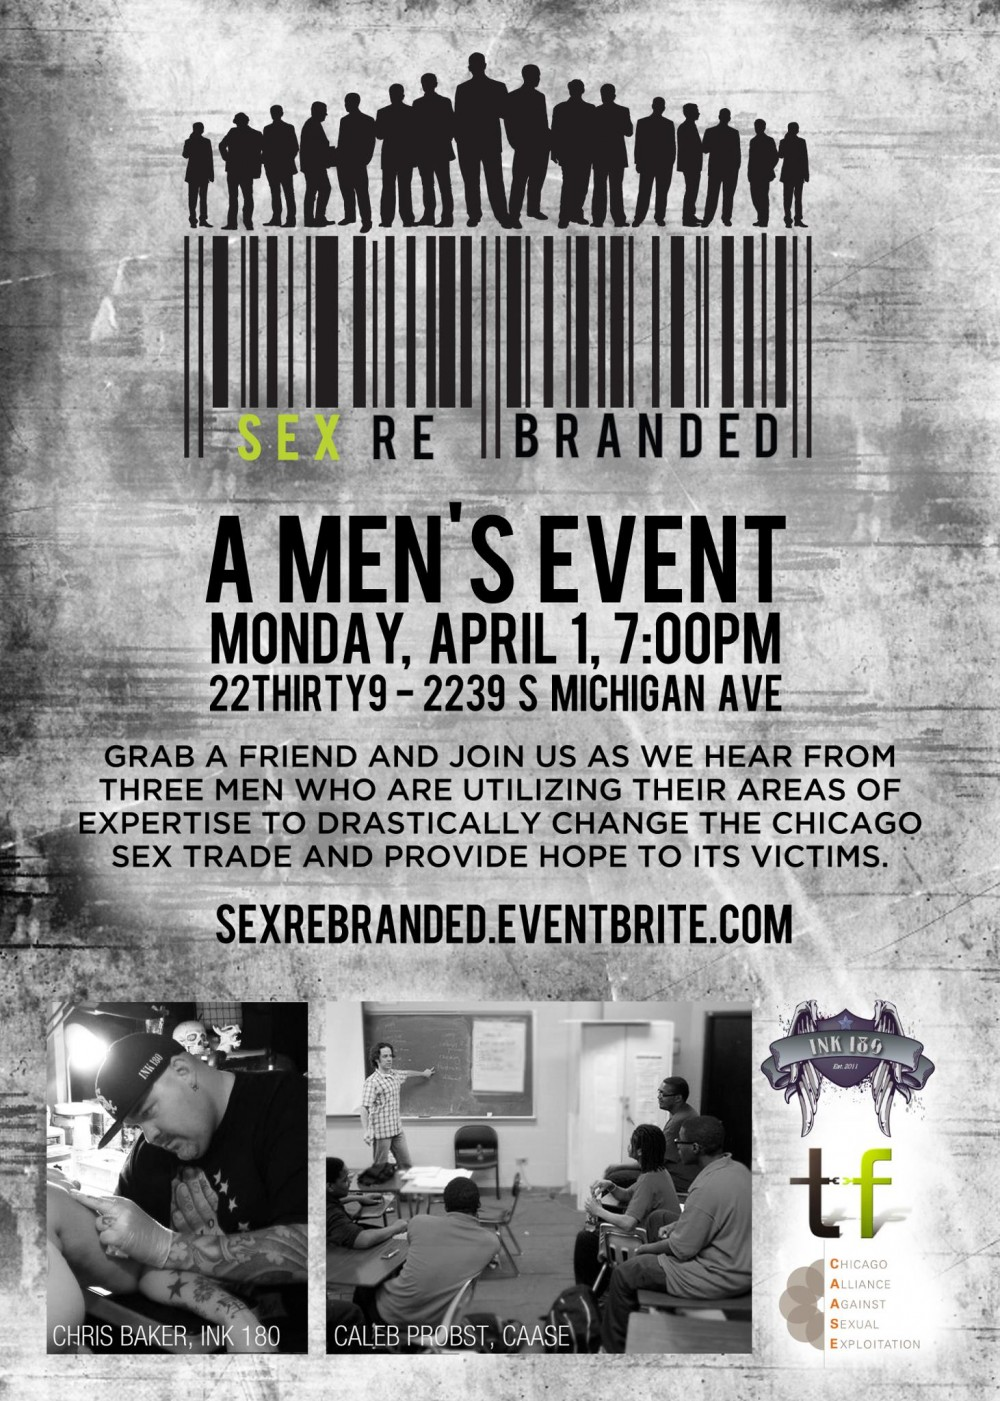 Sex Rebranded - A Men's Event